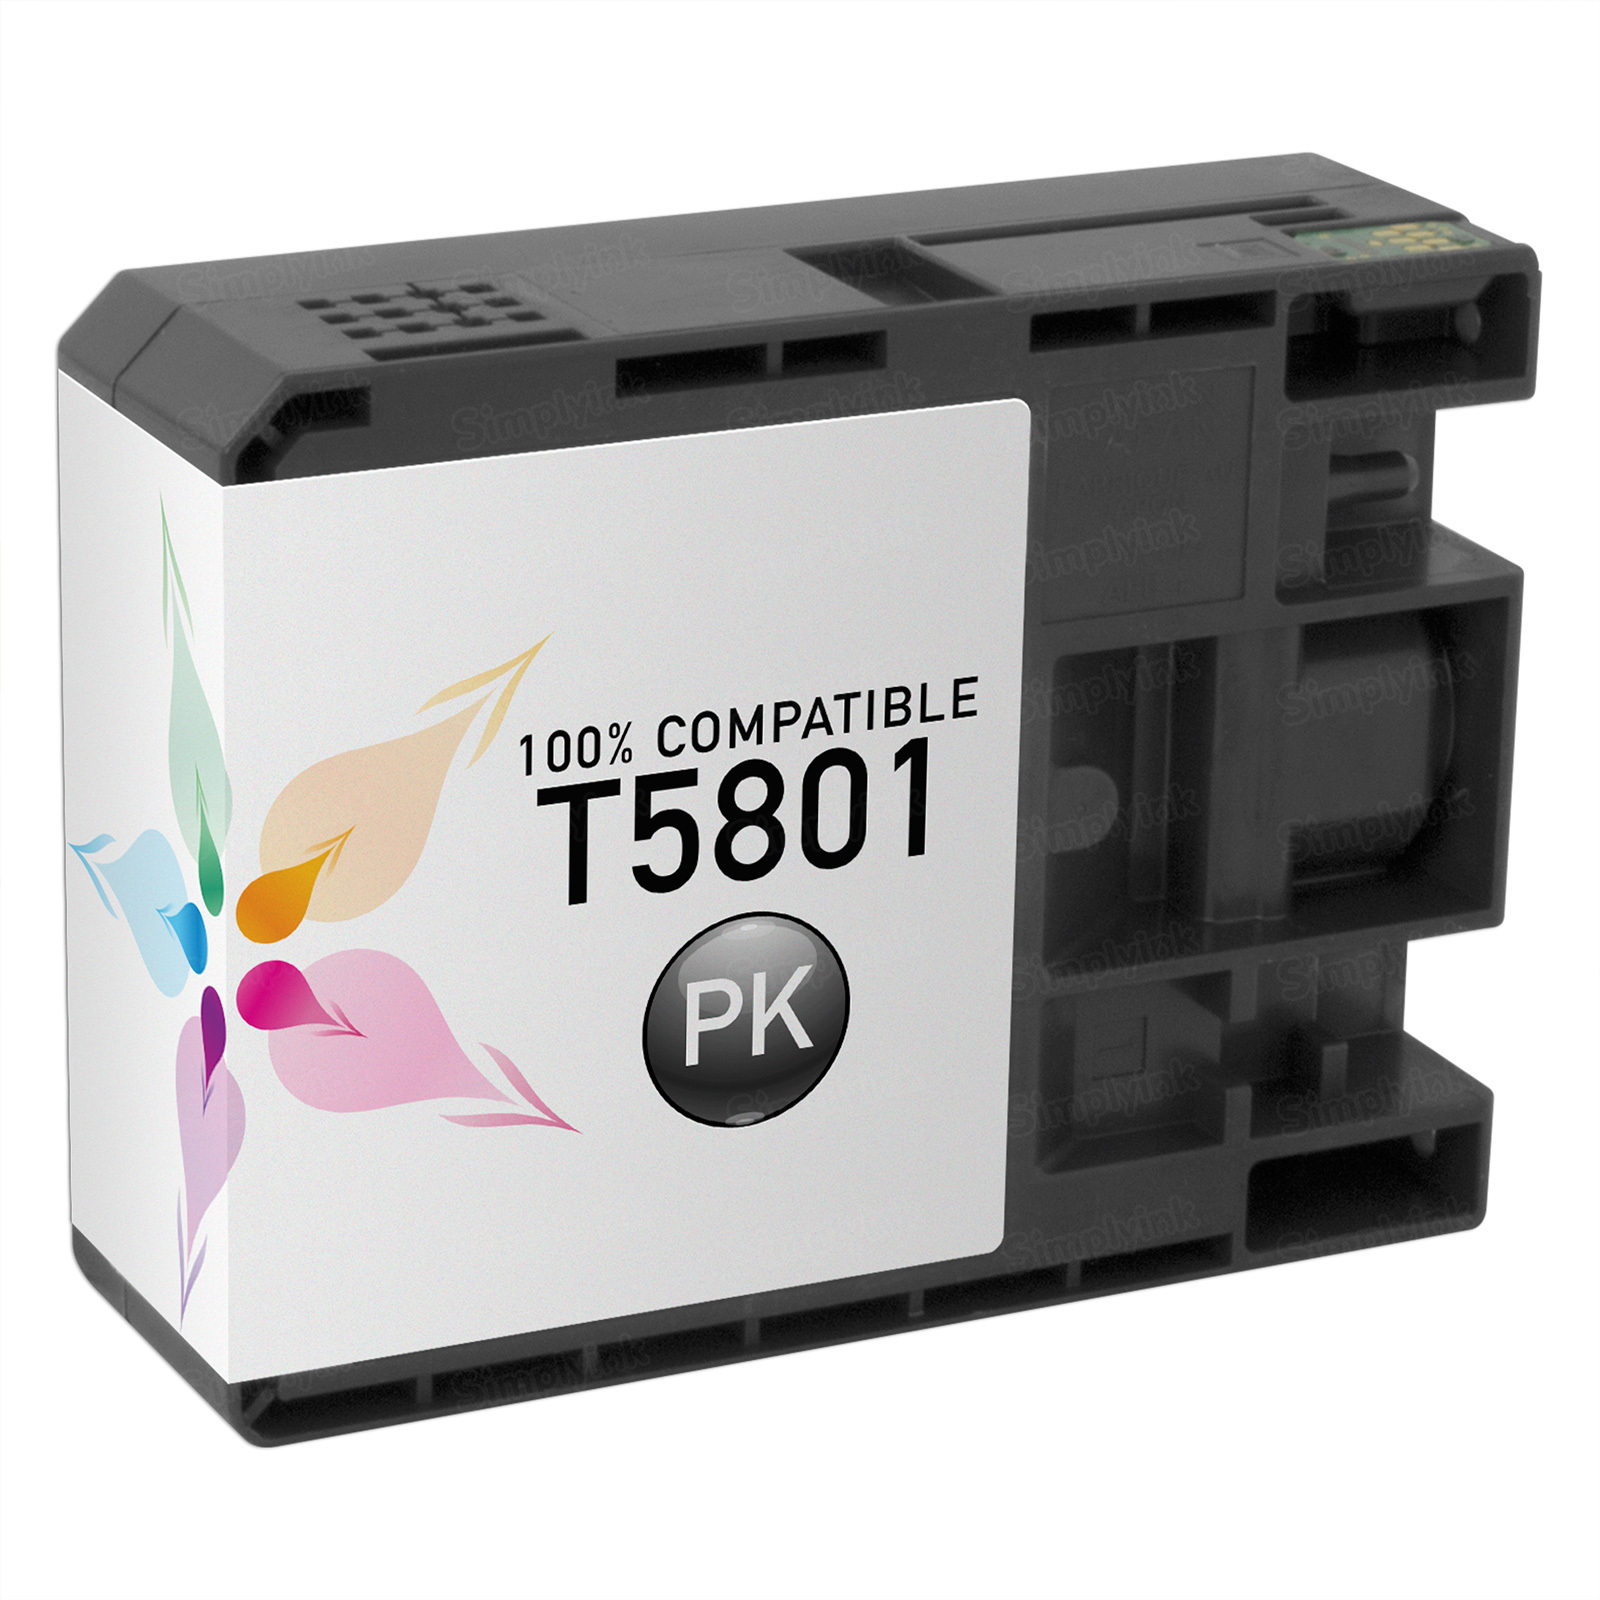 Epson Compatible T580100 Photo Black Inkjet Cartridge for the Stylus Pro 3800